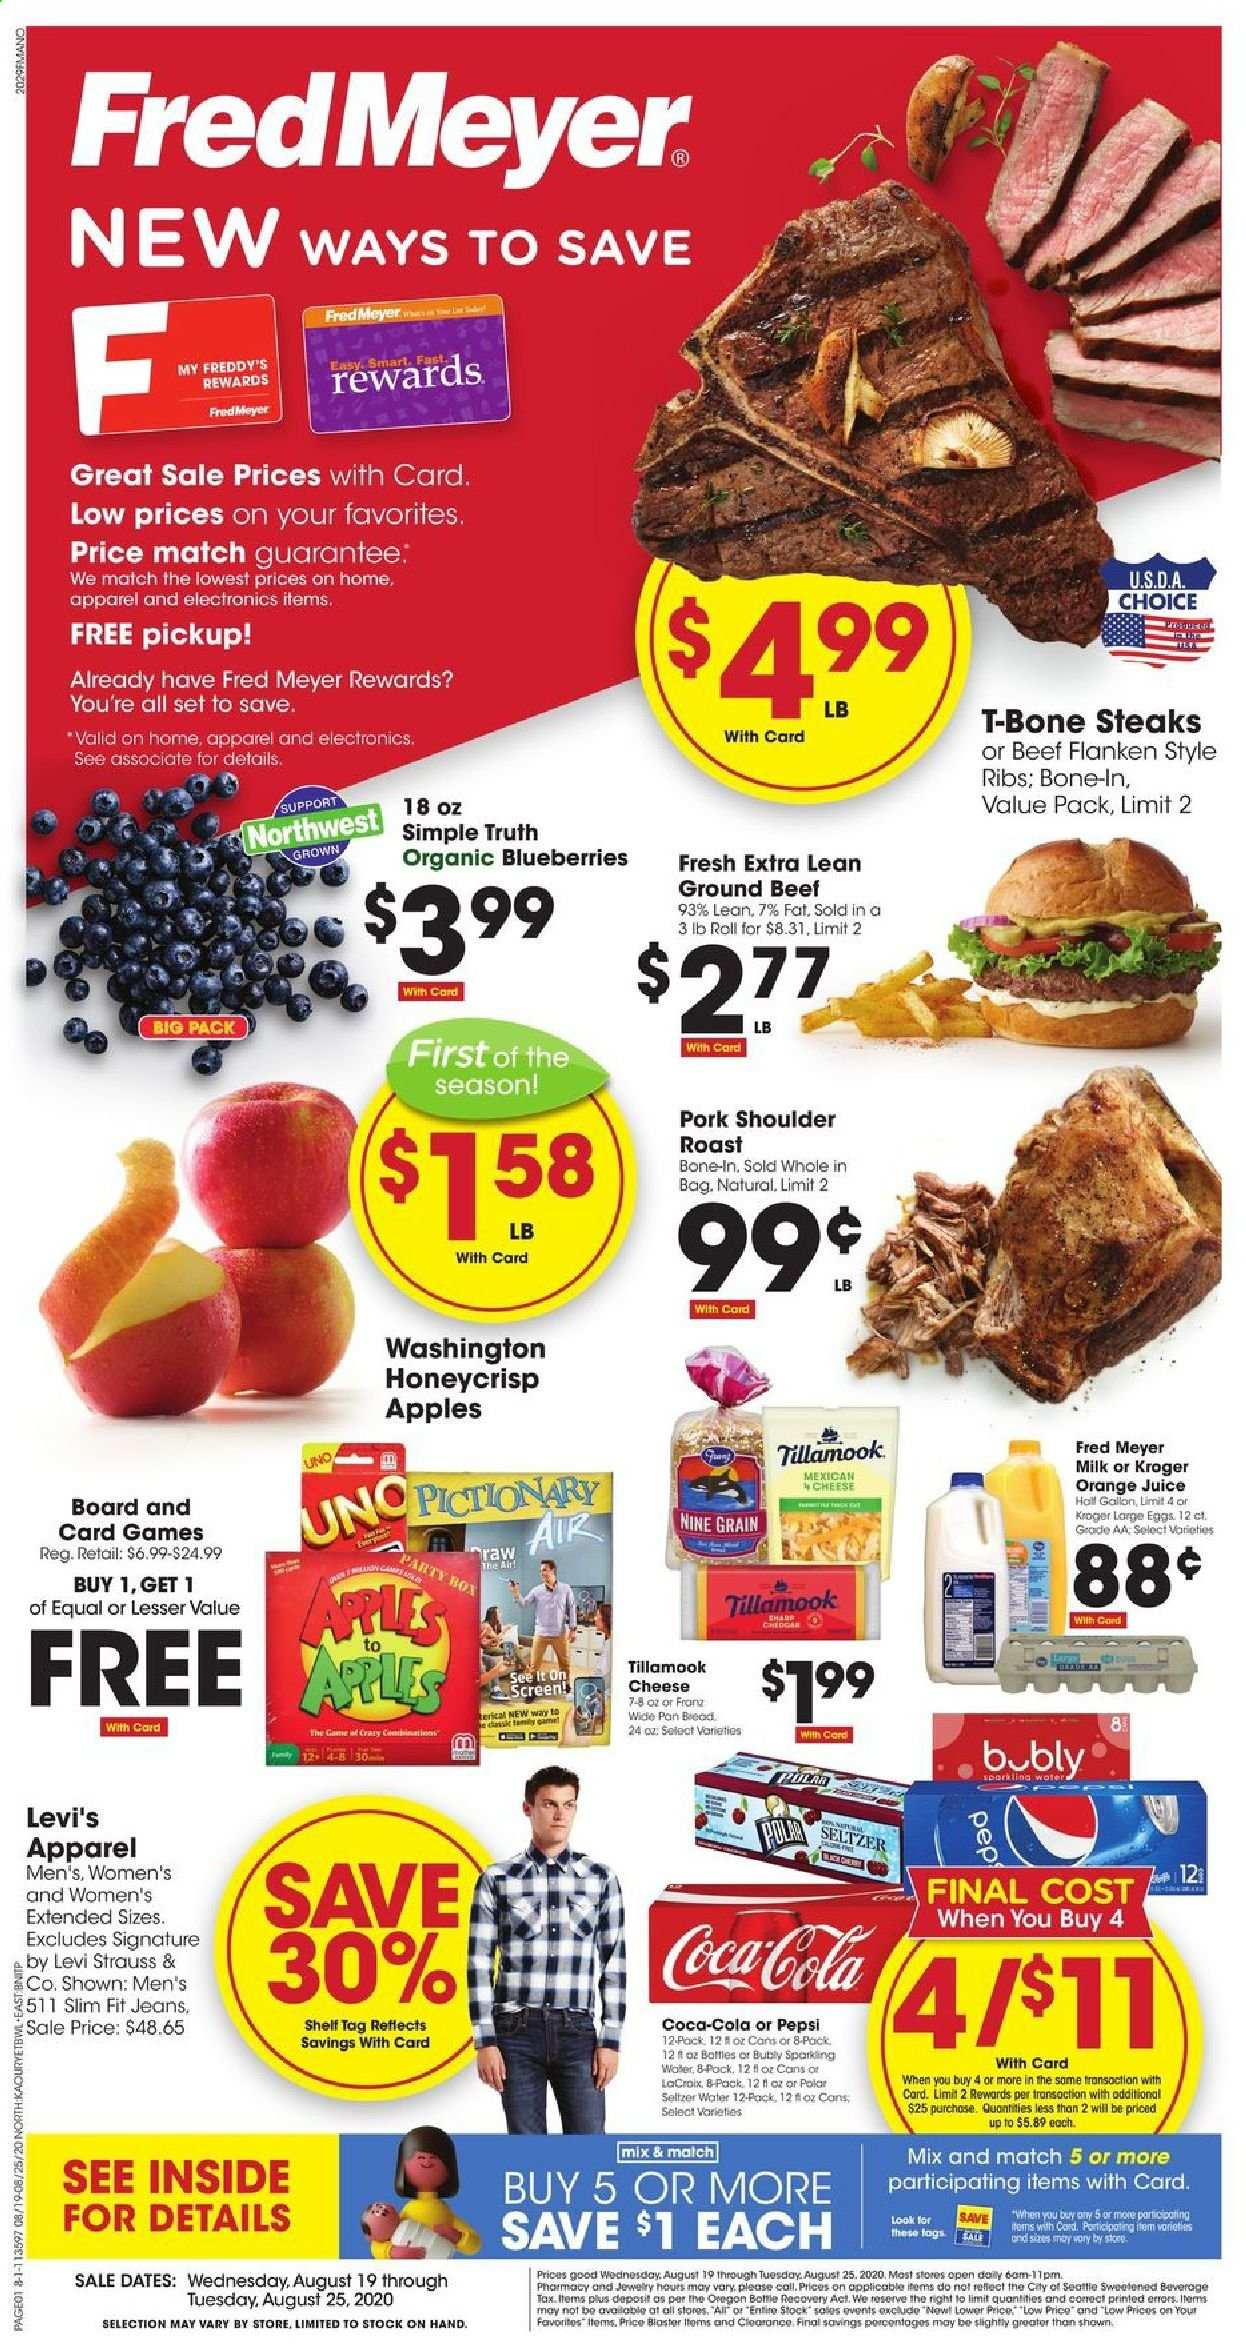 Fred Meyer Flyer - 08.19.2020 - 08.25.2020 - Sales products - apparel, apples, beef meat, blueberries, bottle, box, coca-cola, dates, eggs, ground beef, milk, seltzer, shelf, t-bone steak, jeans, pork meat, pork shoulder, pan, pepsi, orange juice, orange, organic, cheese, juice, game, sparkling water, board, ribs, roast, apple. Page 1.